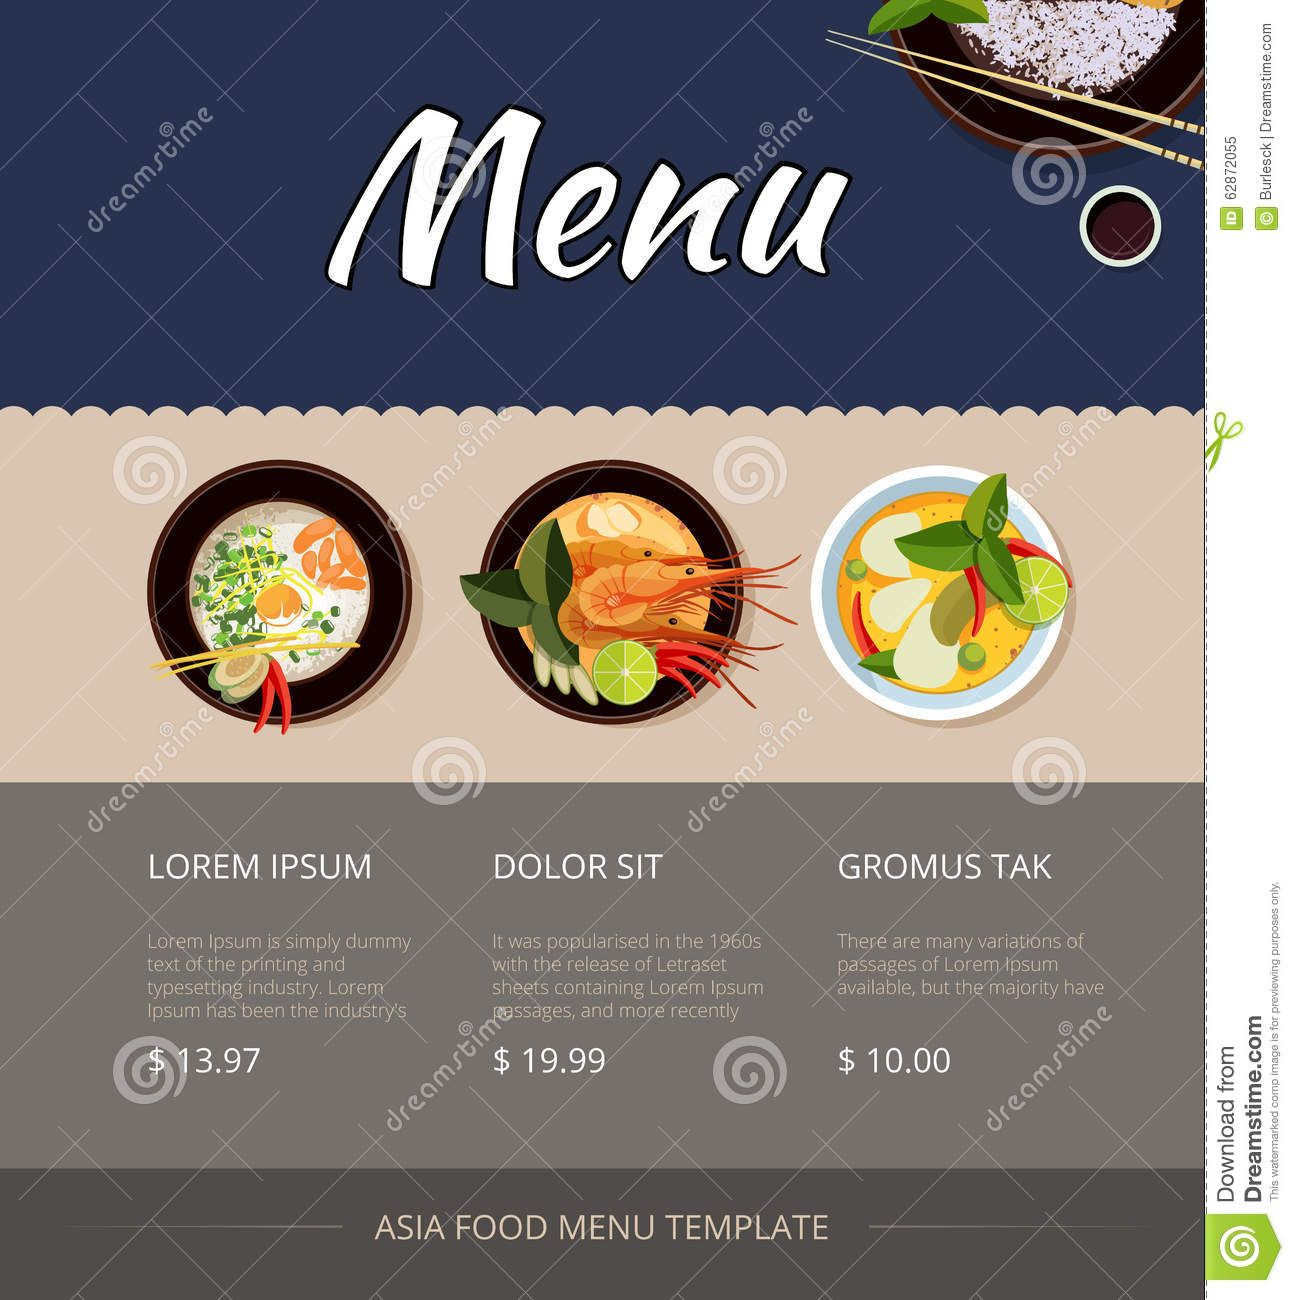 Thai Food Menu Vector Template Design Thai Food Menu Food Menu